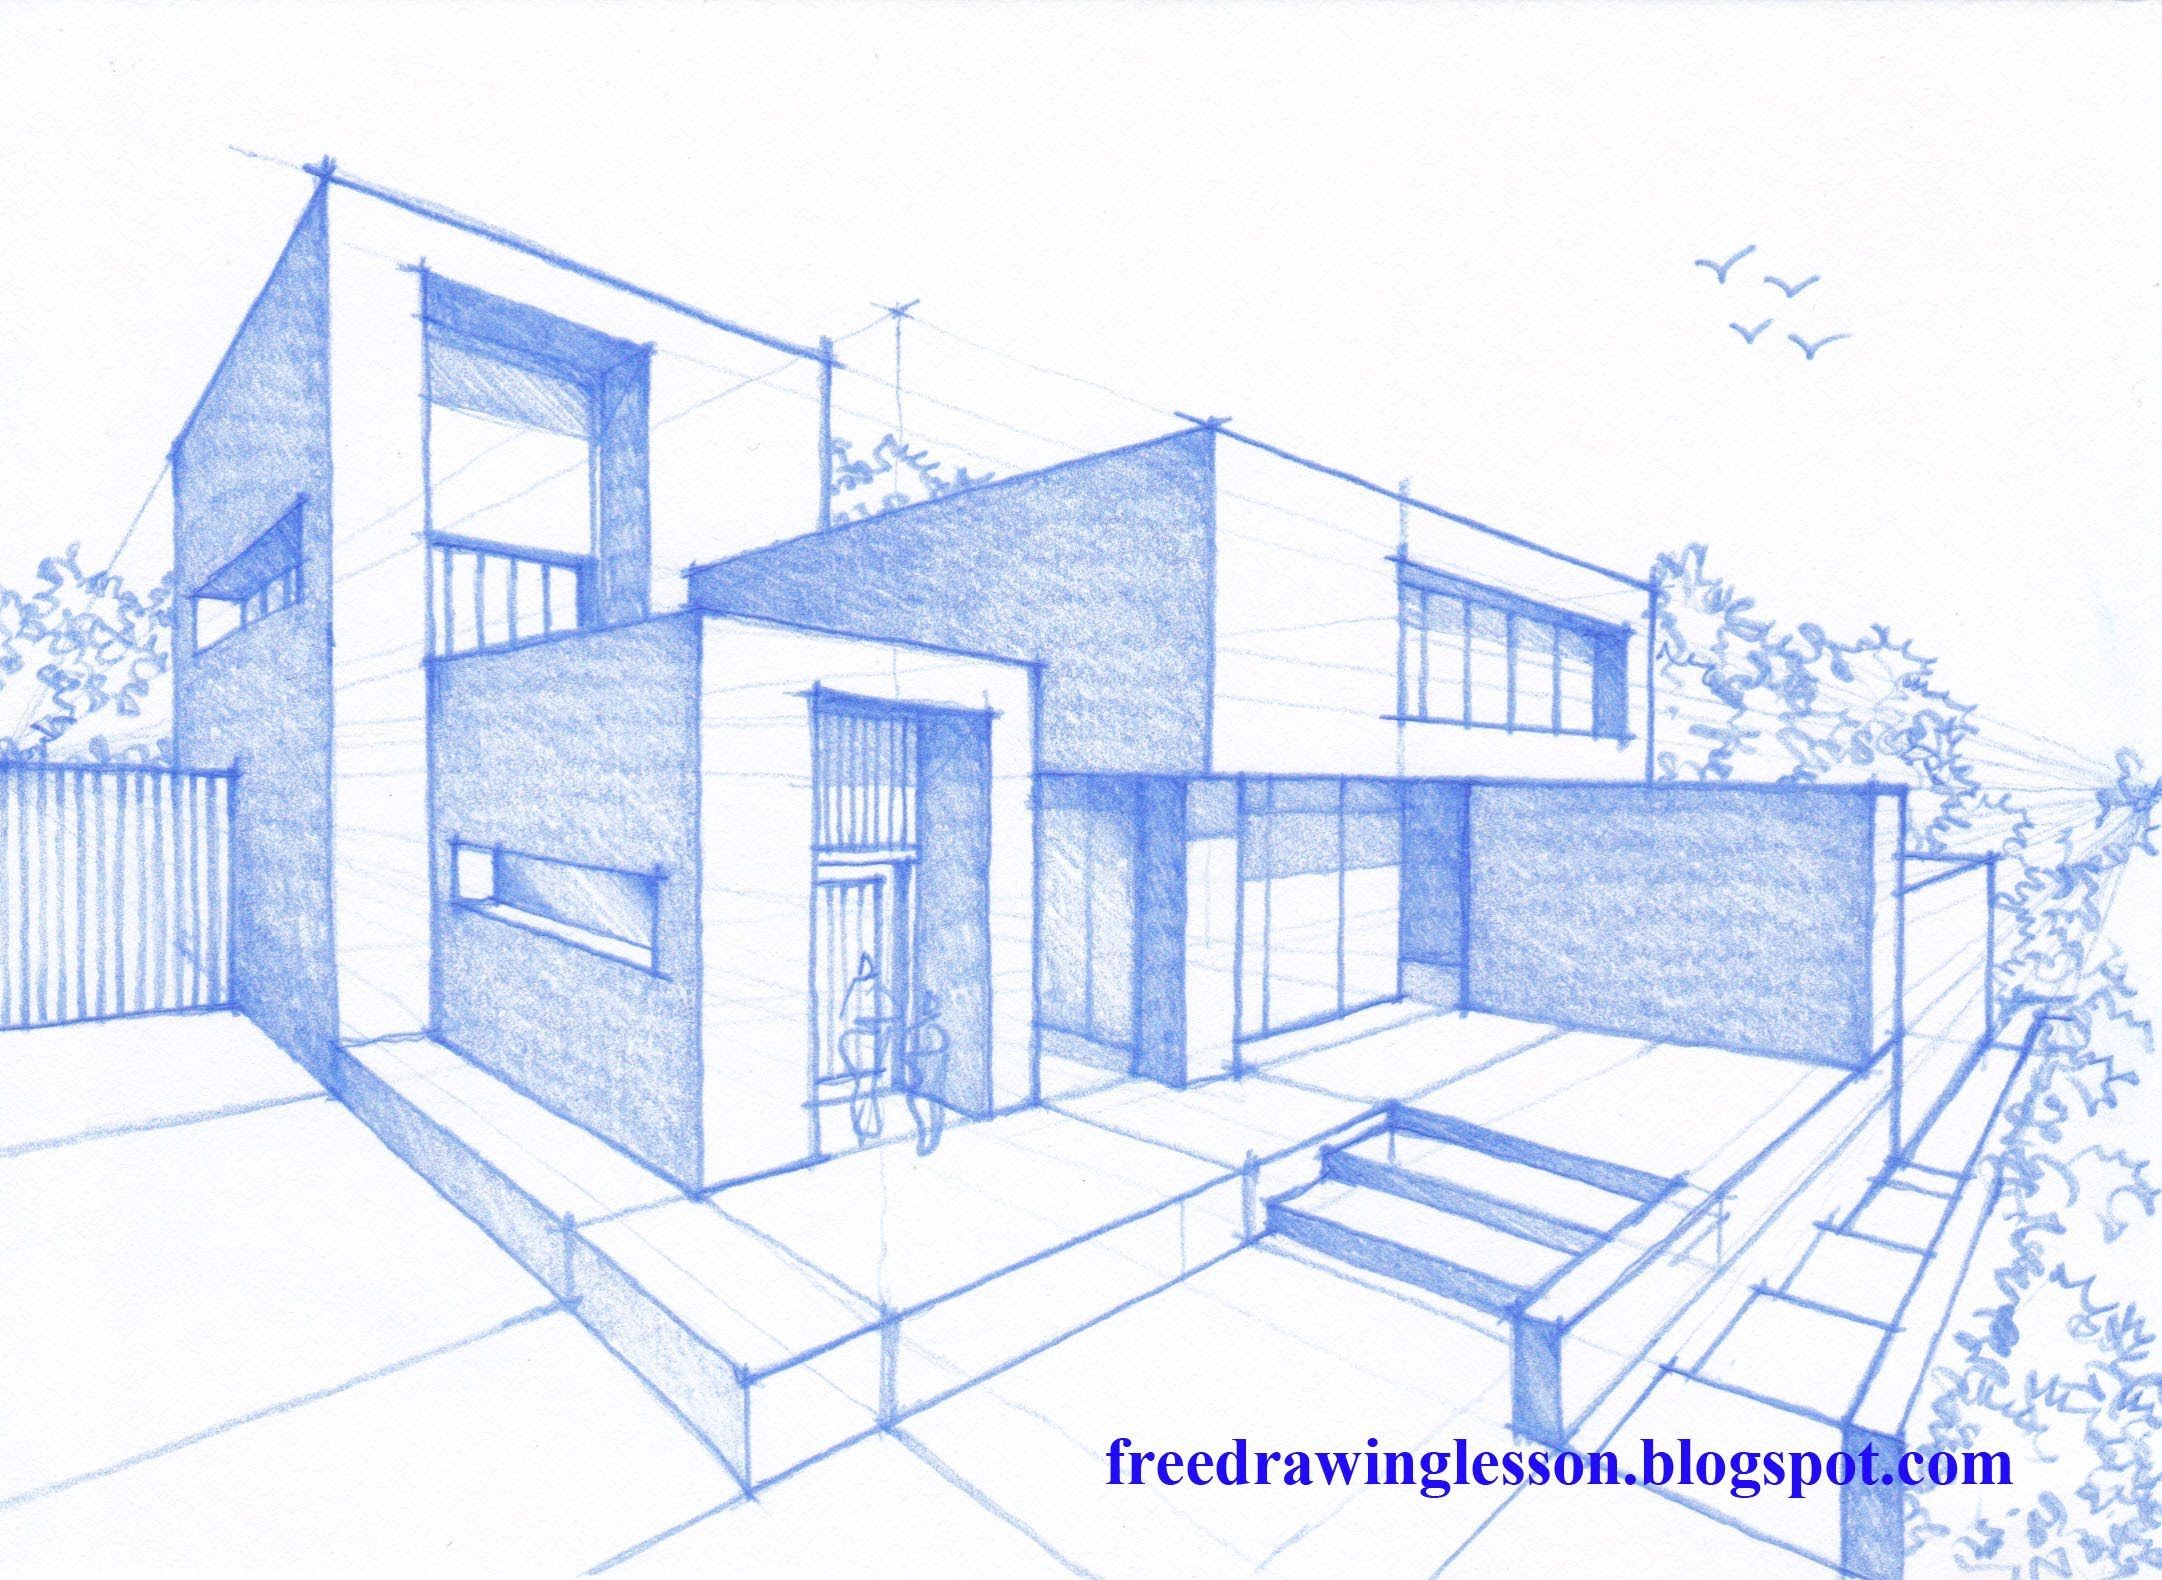 Let Us Try To Draw This House Design By Following The Step Process In